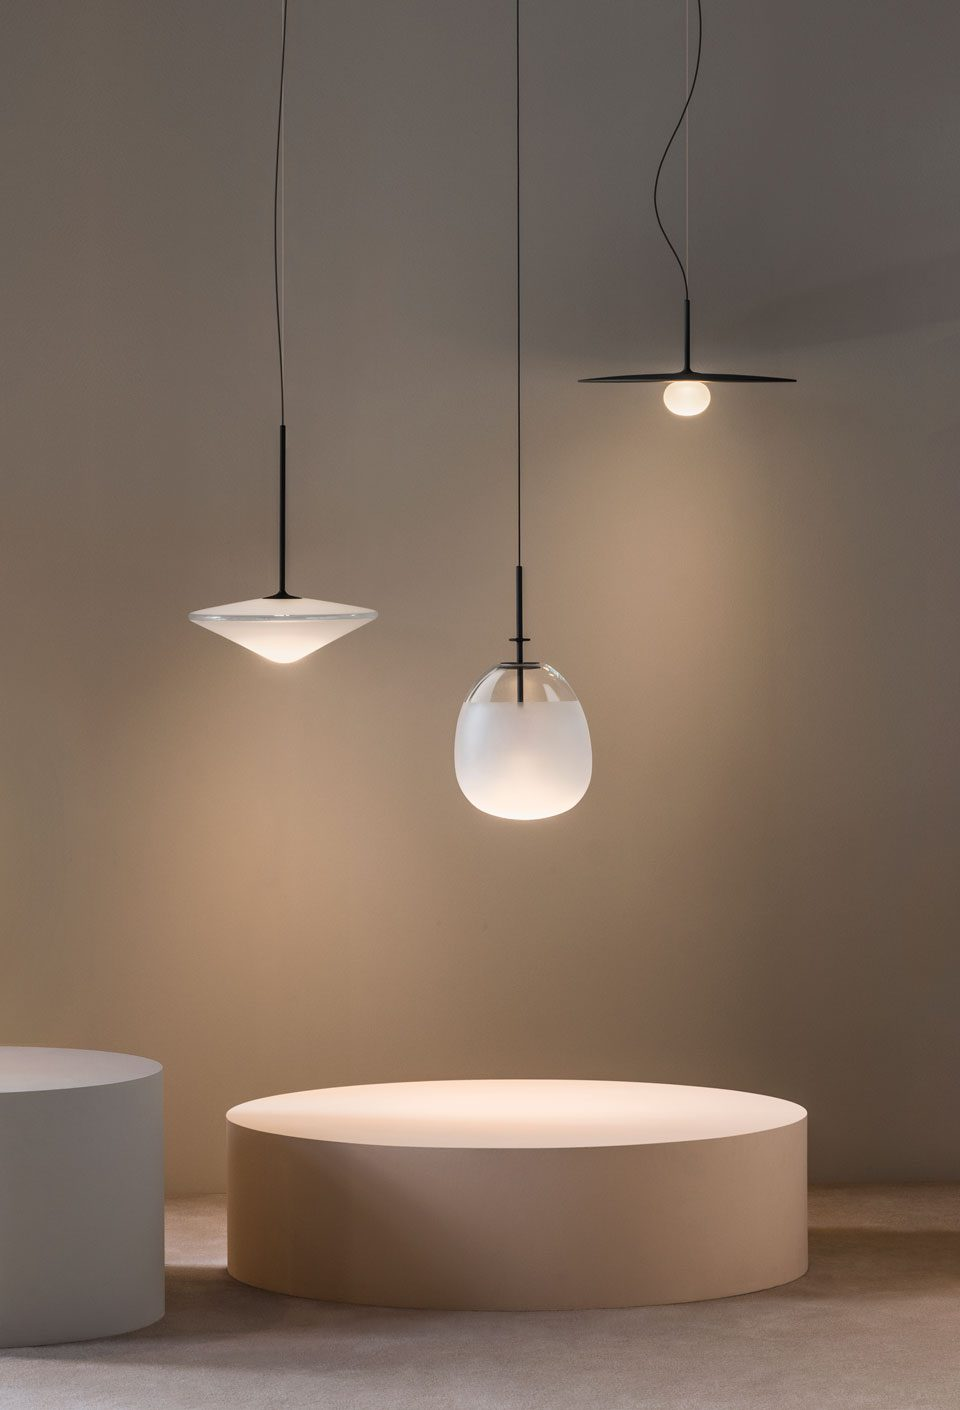 Vibia-Stories-The Tempo Collection: Archetypal Lighting, Reinterpreted